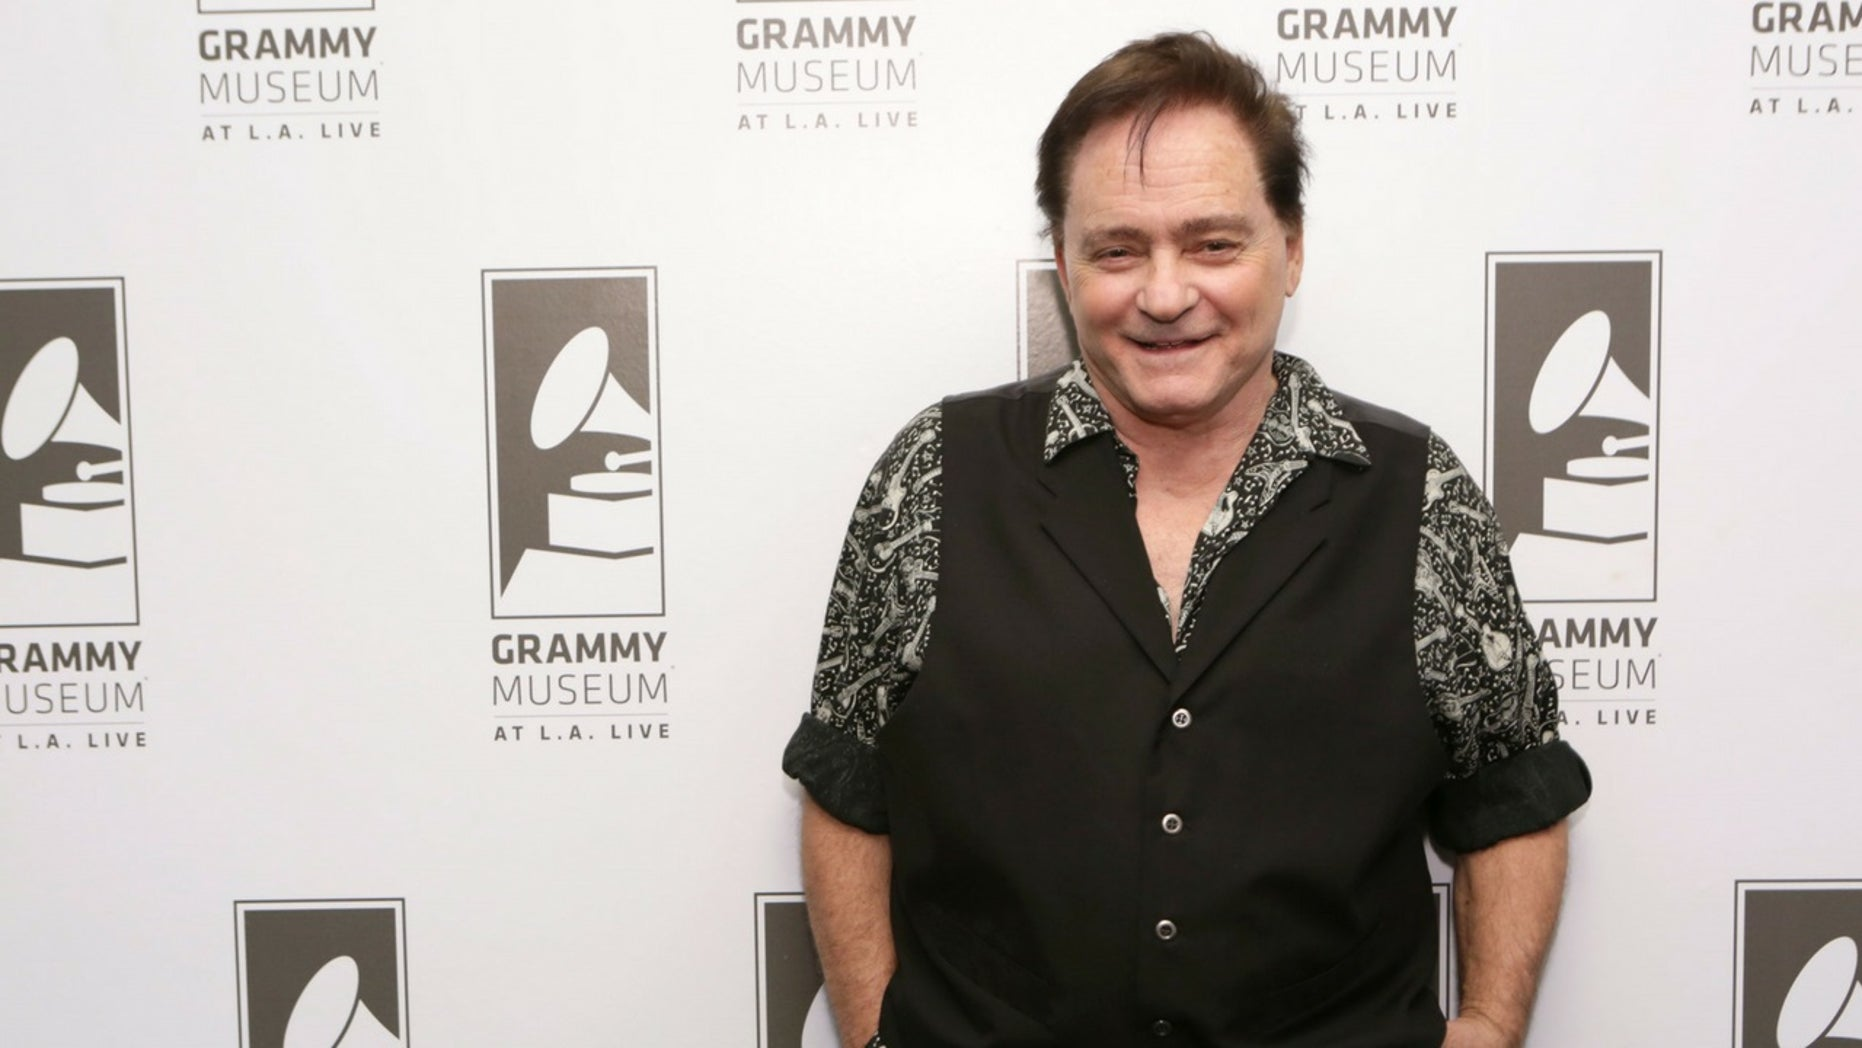 Marty Balin filed a lawsuit against a New York City hospital after he claimed a botched surgery ruined his career.